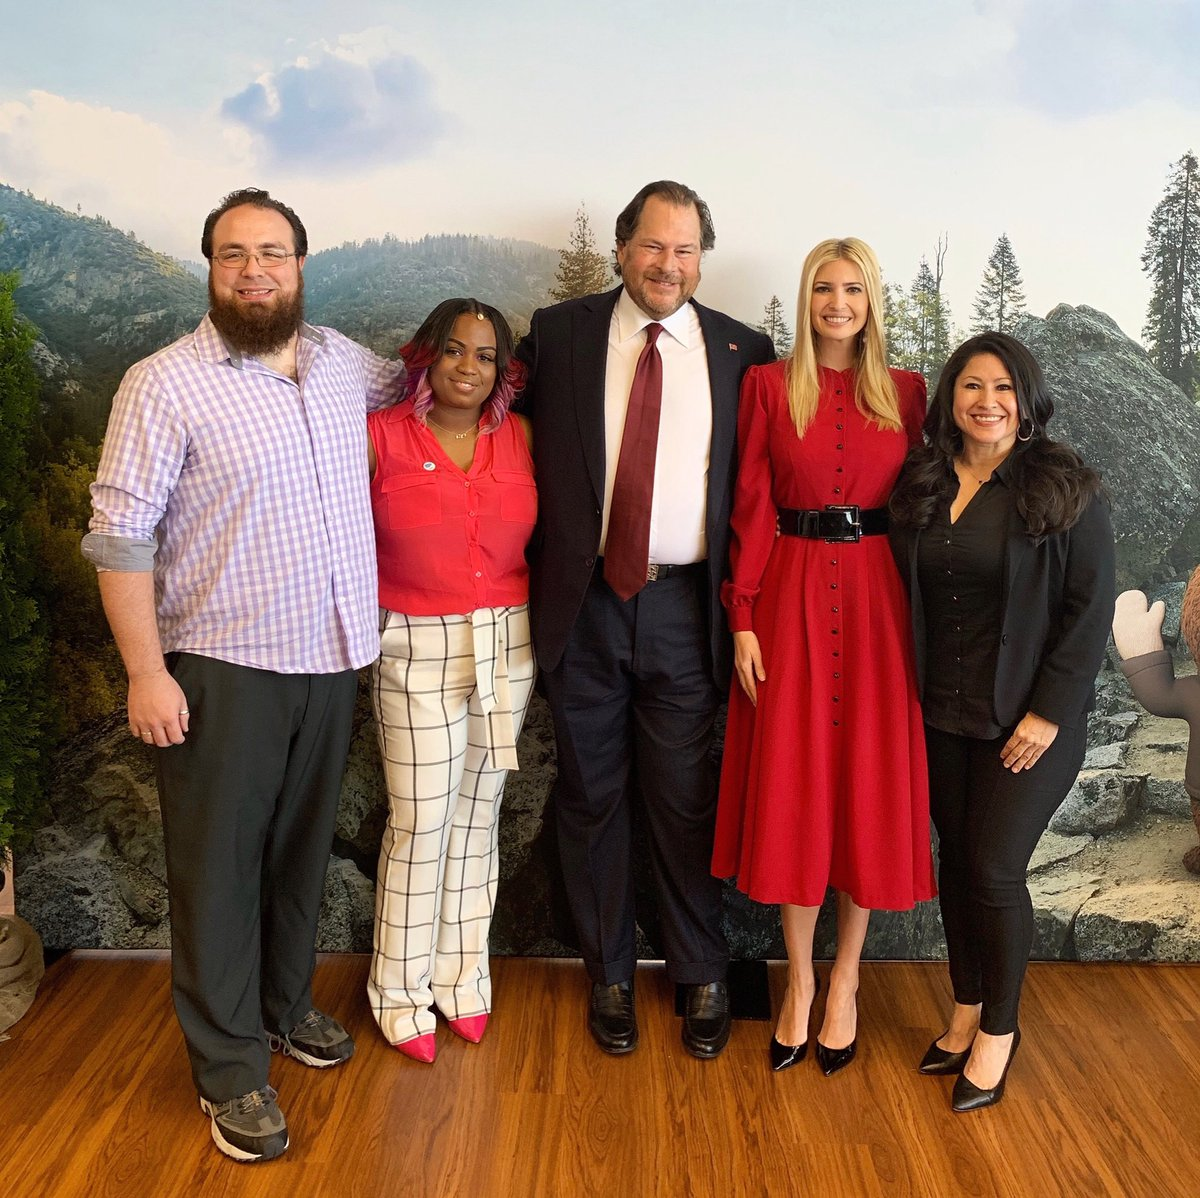 Today, we heard stories of lives transformed by rewarding careers through @salesforce visionary approach to online learning.  Thank you @Benioff for signing our #PledgetoAmericasWorkers and committing to investing in the skills + talents of 1 MILLION more Americans!   Wow! 👏